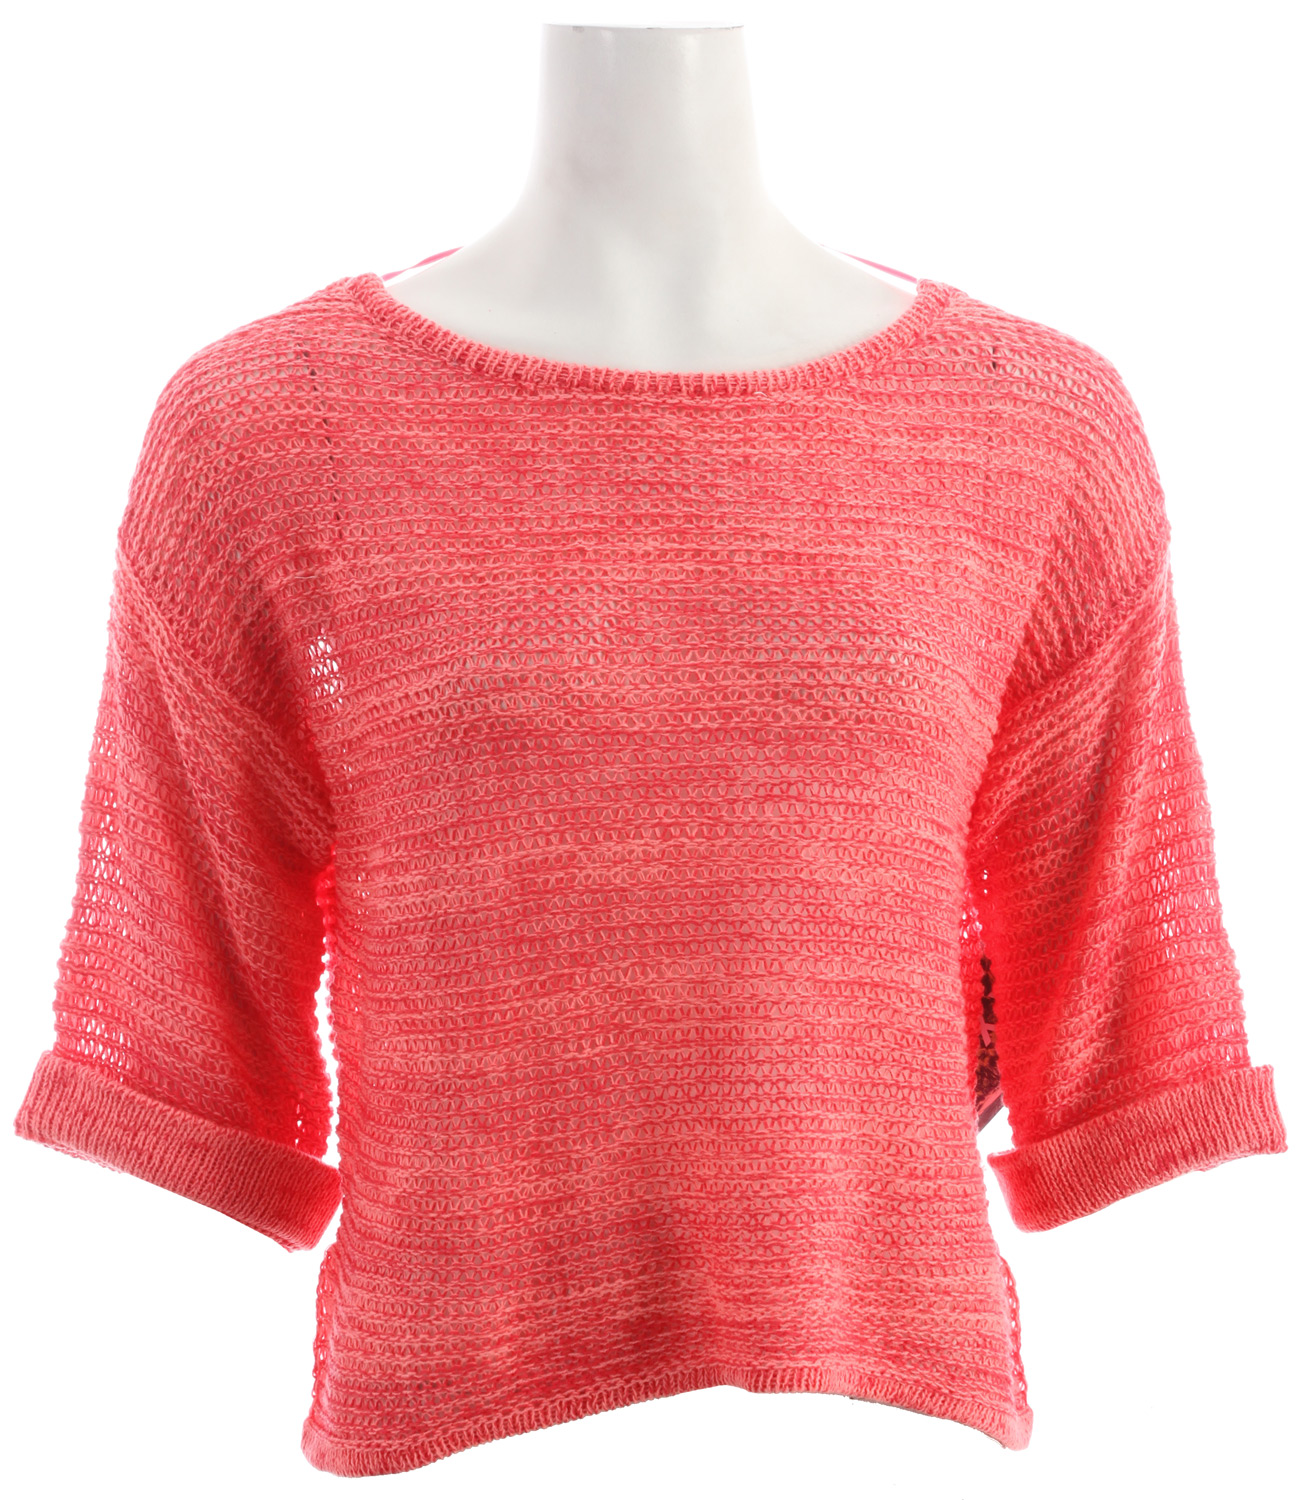 Surf Roxy Total Uproar Sweater Paradise Pink Pattern - $32.95